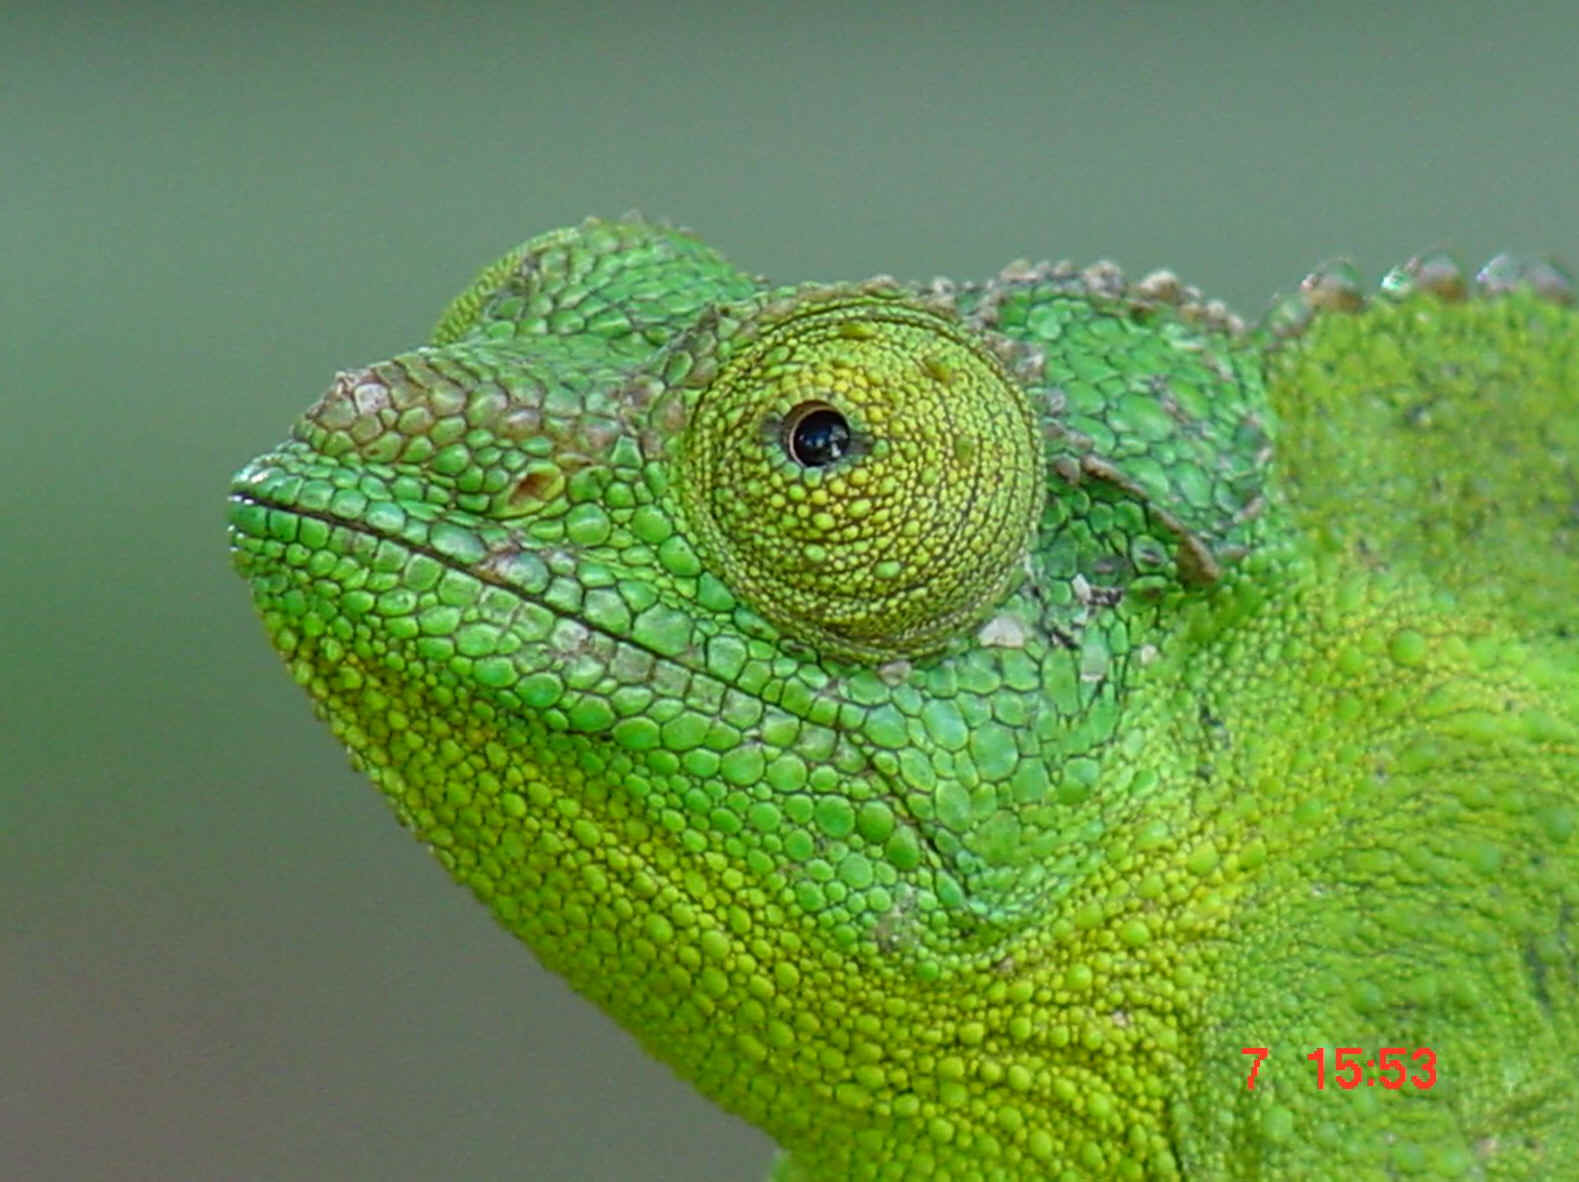 Male jackson chameleon - photo#28